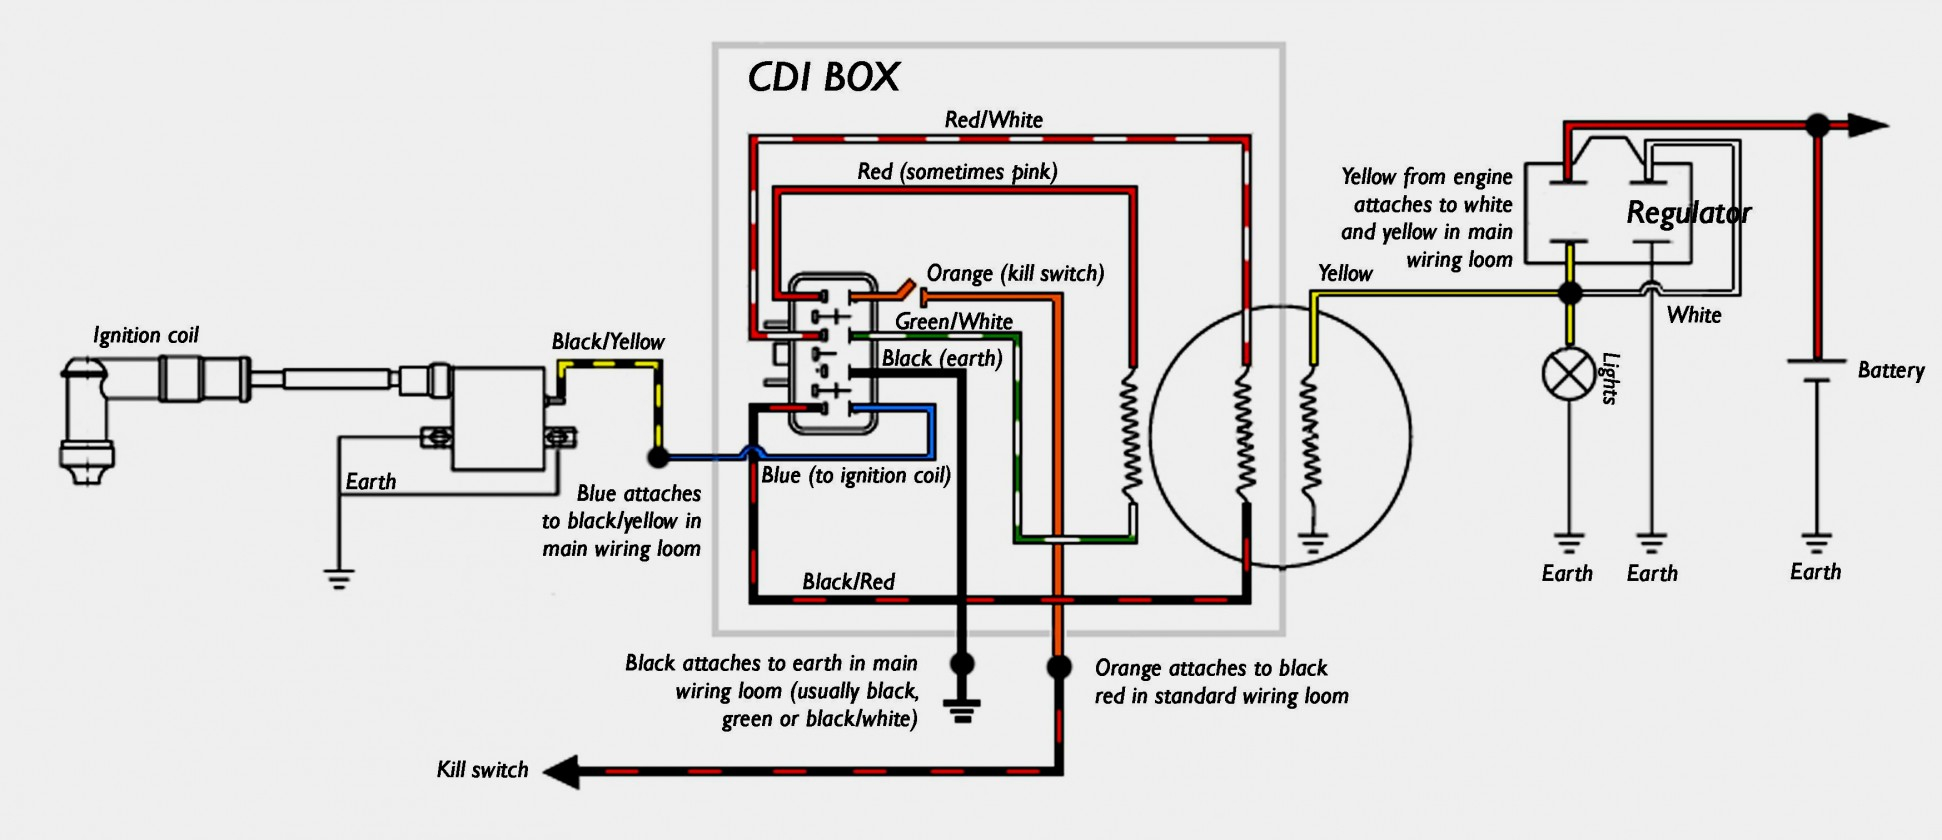 Honda Cdi Box Wiring | Wiring Diagram - 6 Pin Cdi Wiring Diagram